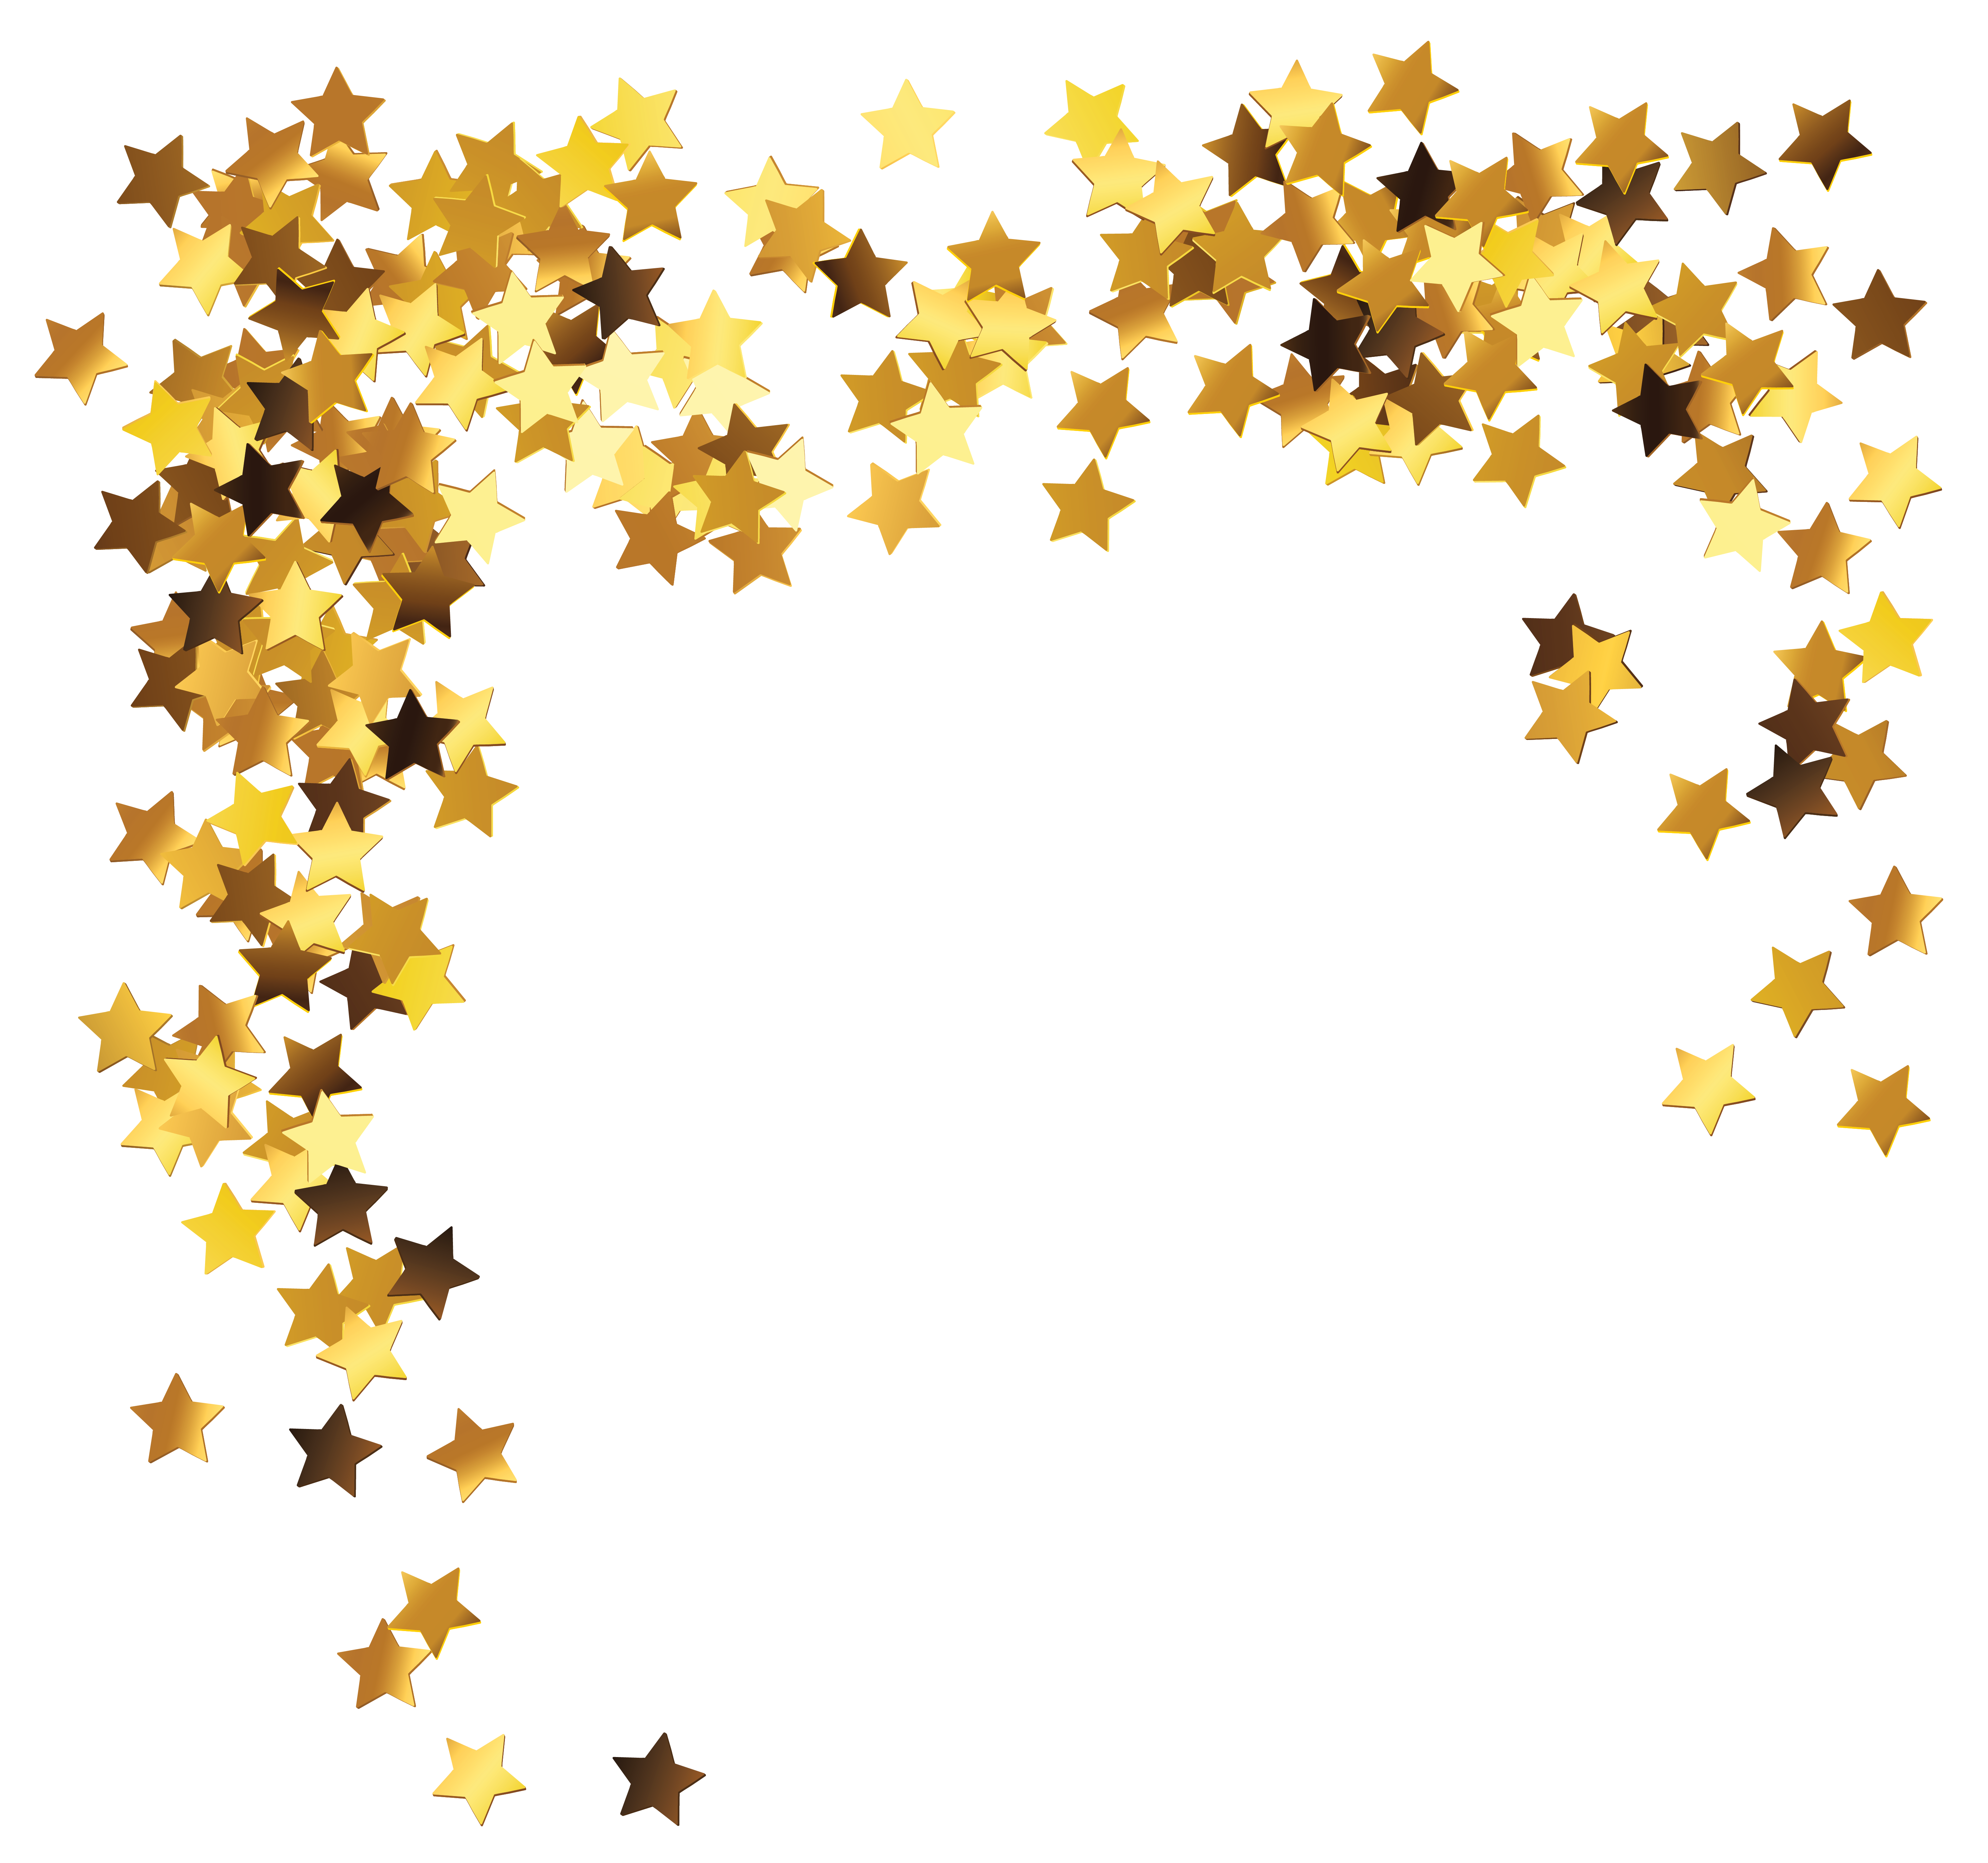 Gold confetti border png. Pin by asy on